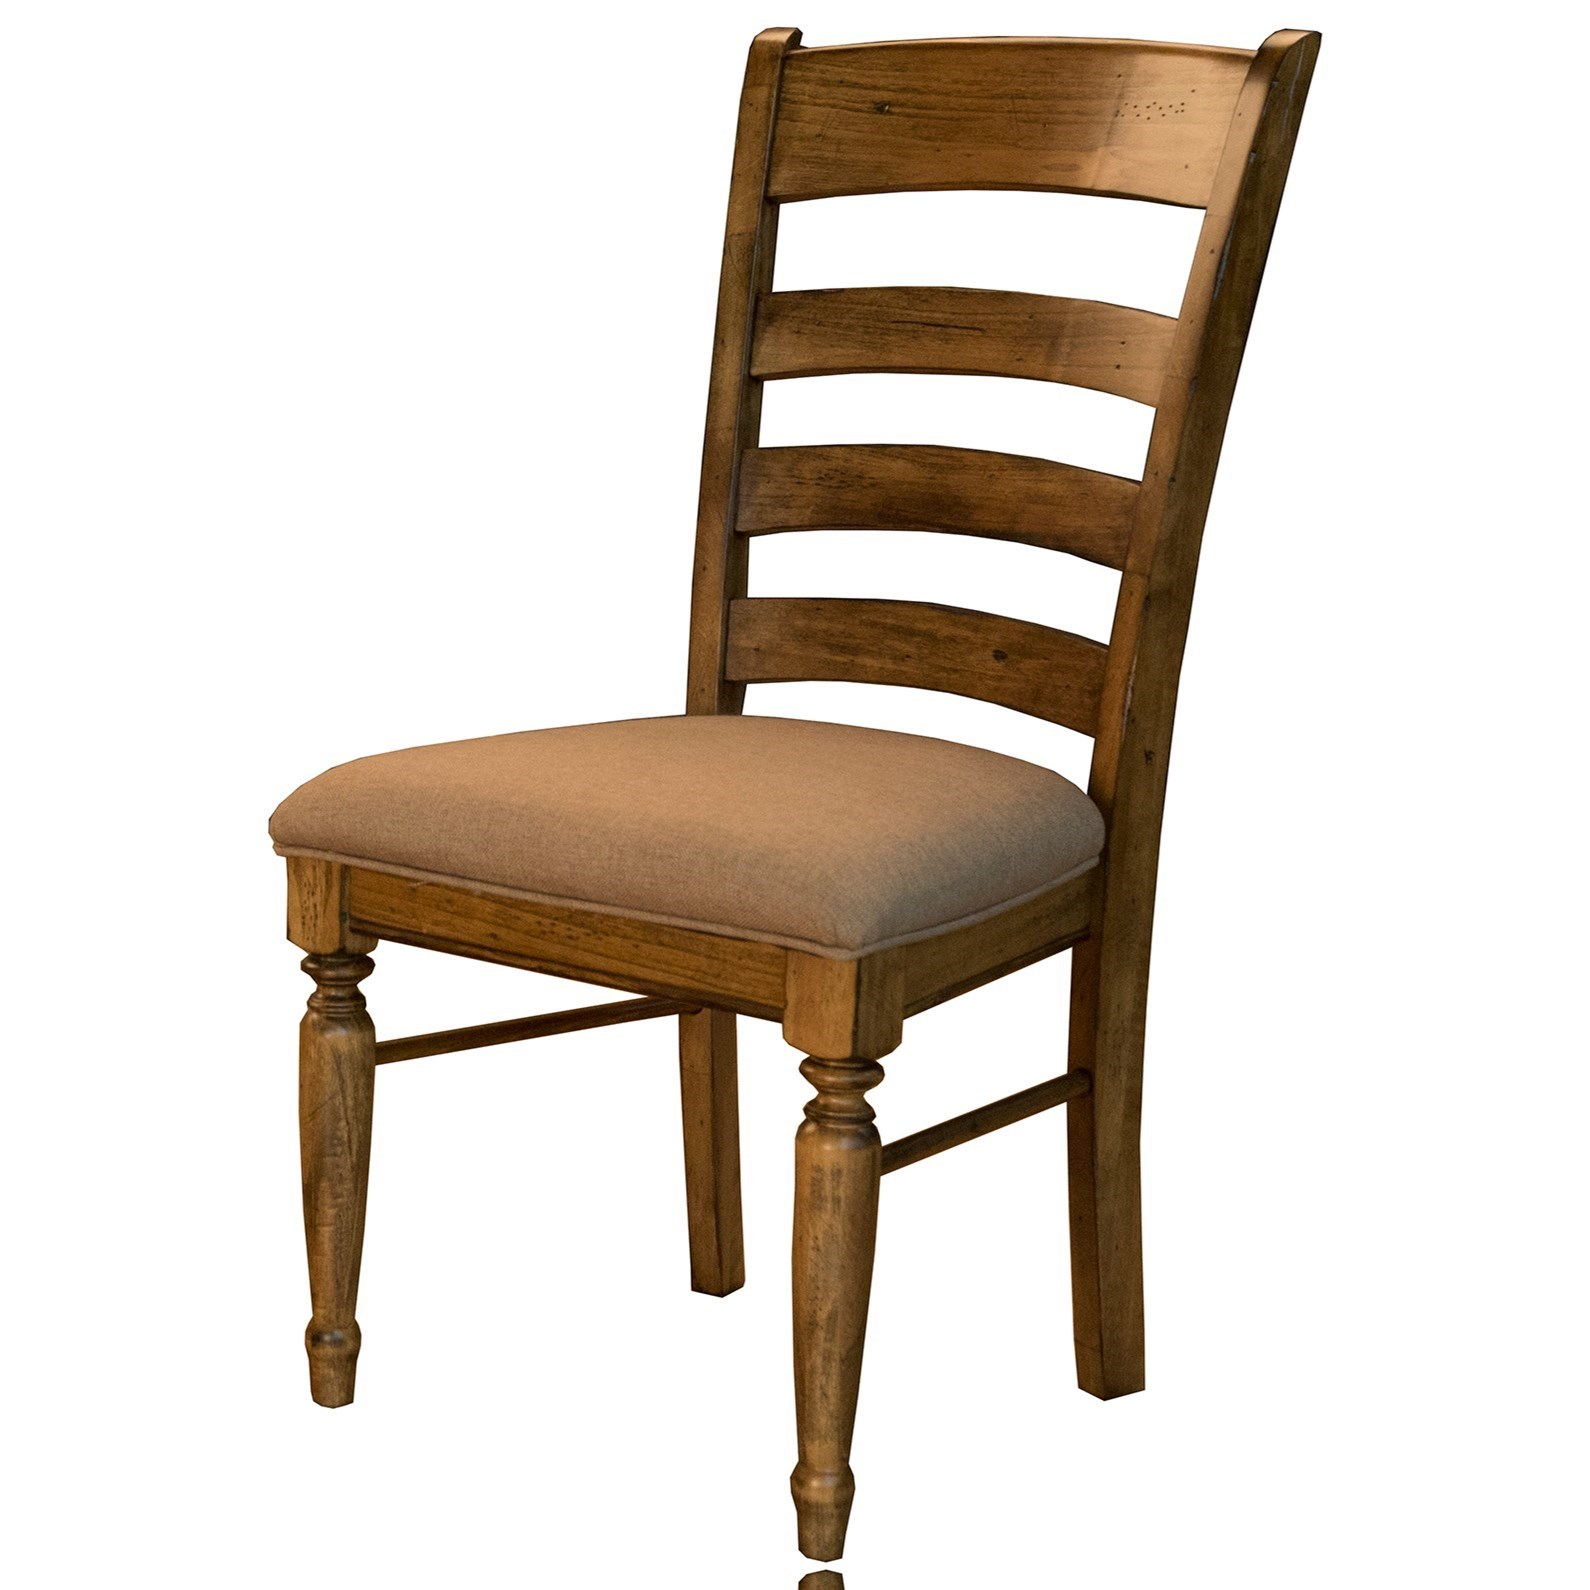 Bennett Ladderback Side Chair by A-A at Walker's Furniture